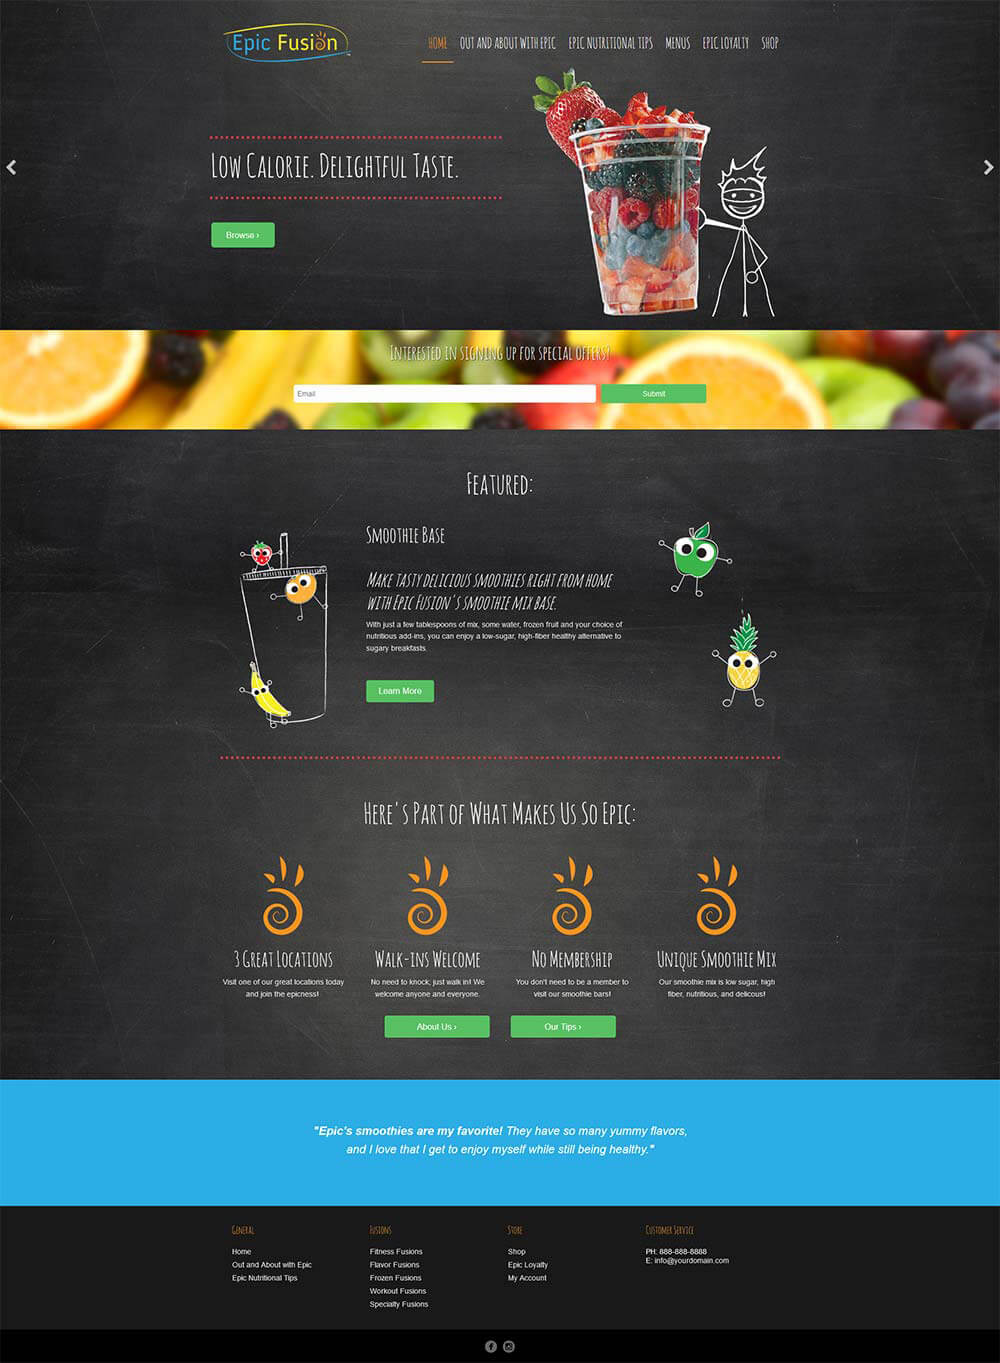 Epic-Fusion---Nutrition-2015-12-02-17-23-02